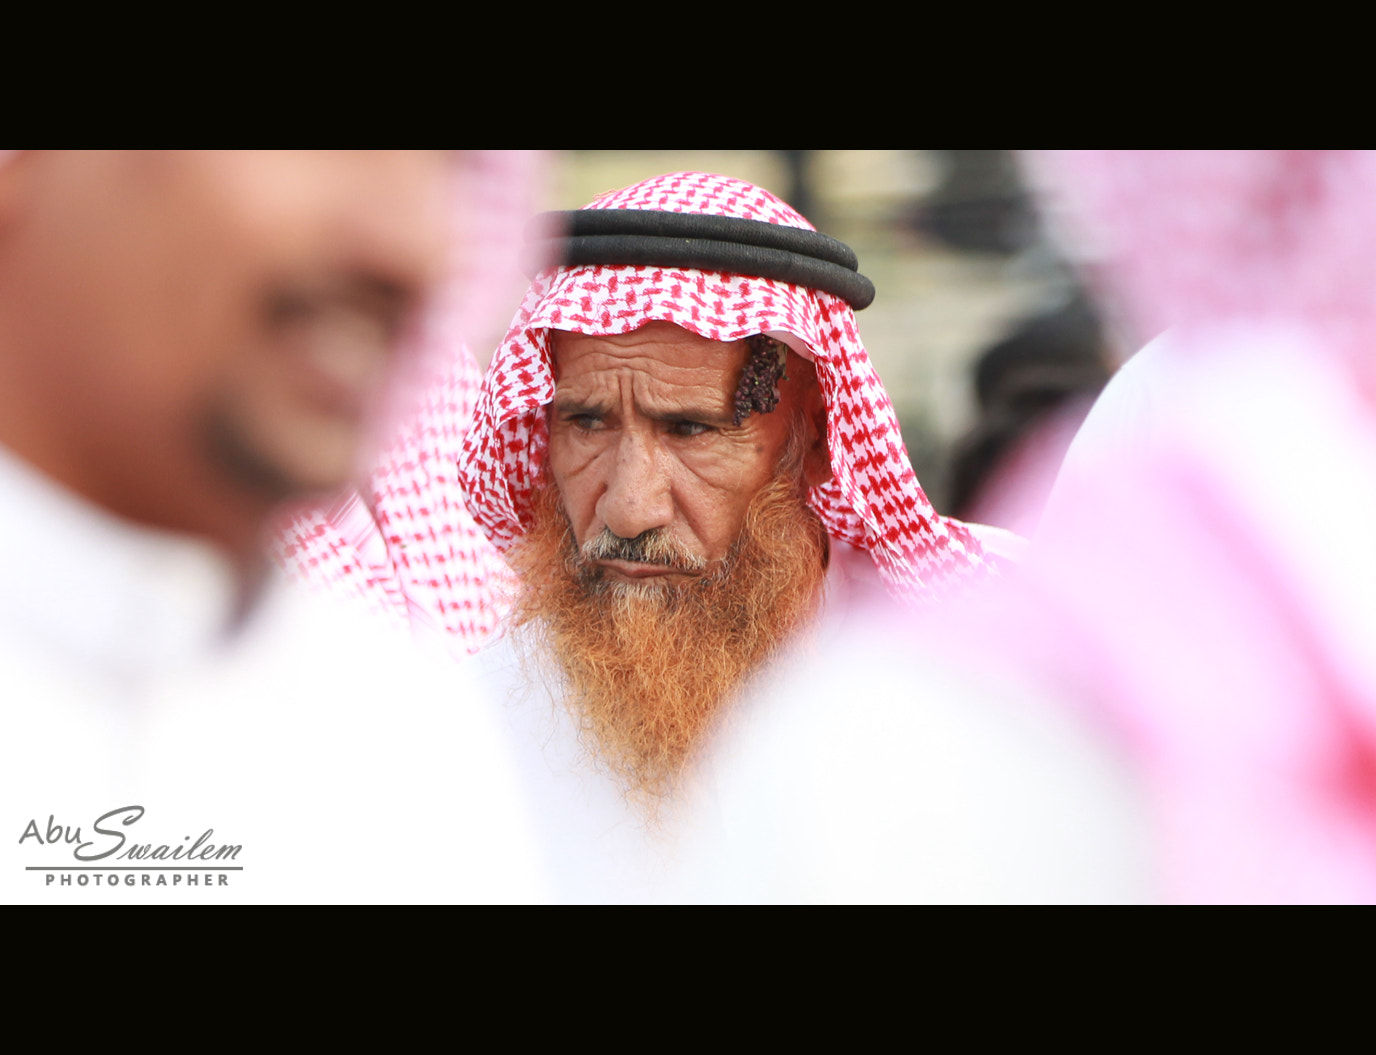 Photograph An interesting looking man by Abu  Swailem on 500px